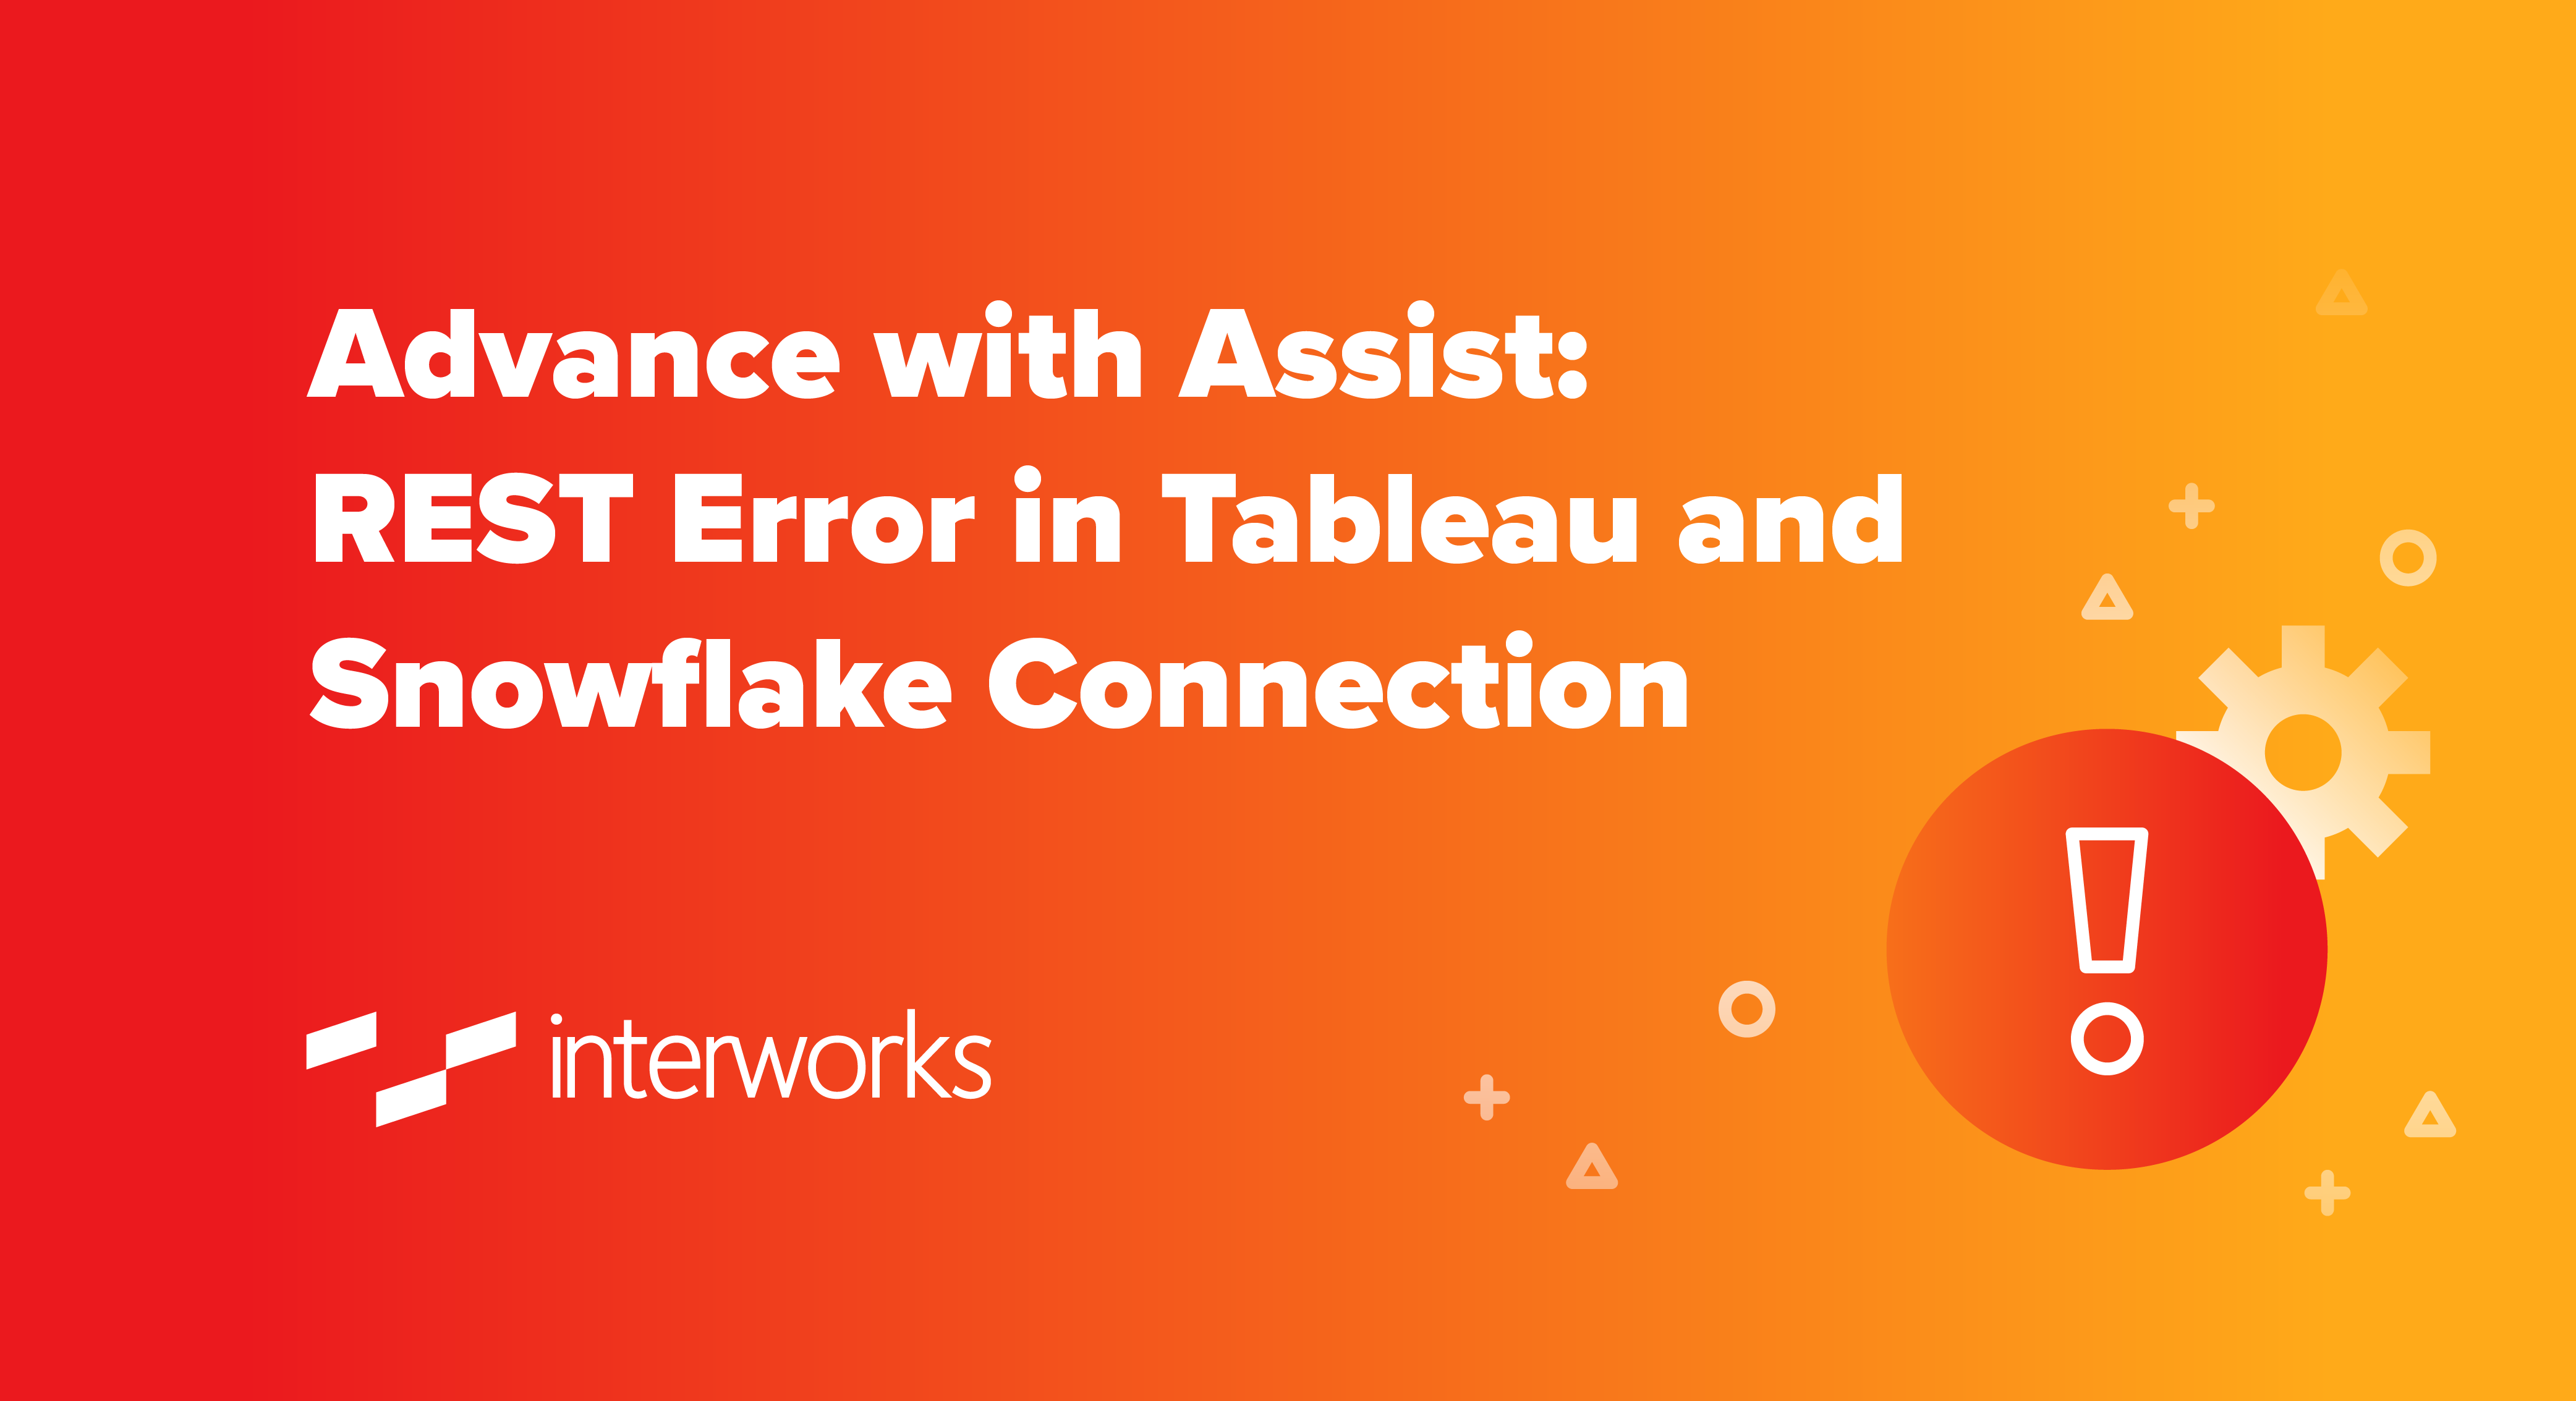 Advance with Assist: REST Error in Tableau and Snowflake Connection